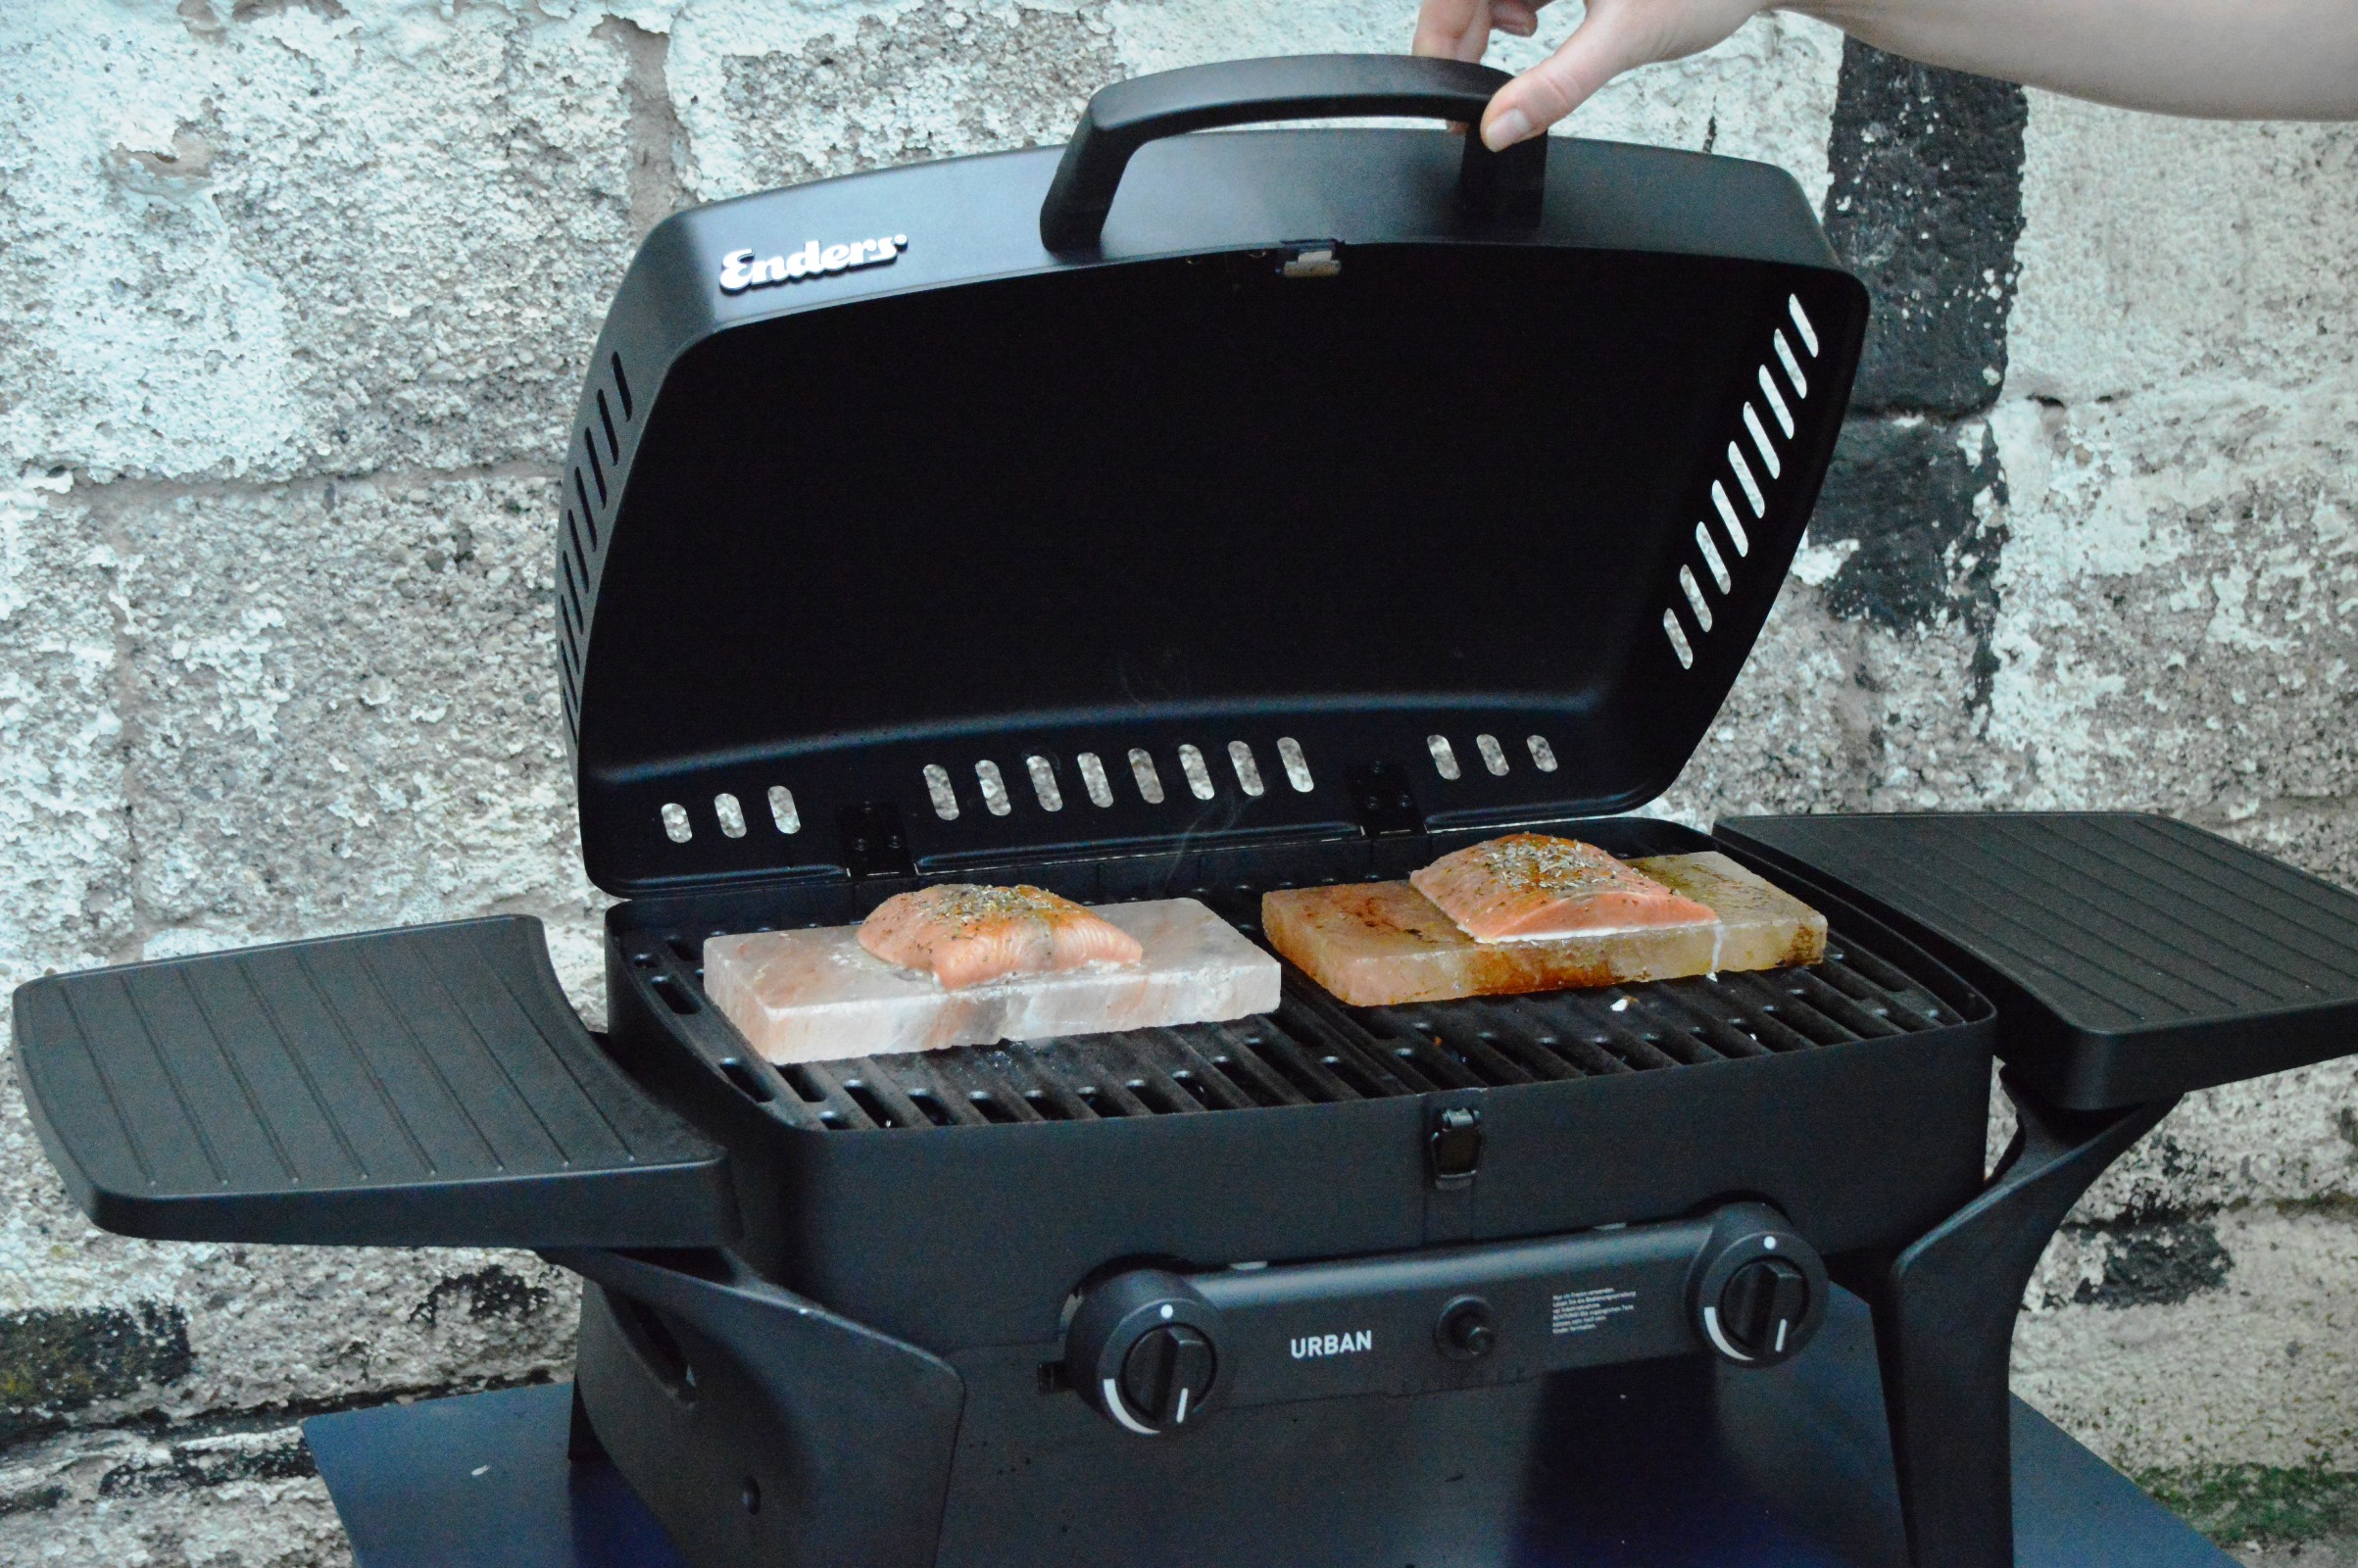 Enders Gasgrill Im Test : Angegrillt enders urban im test bacon zum steak